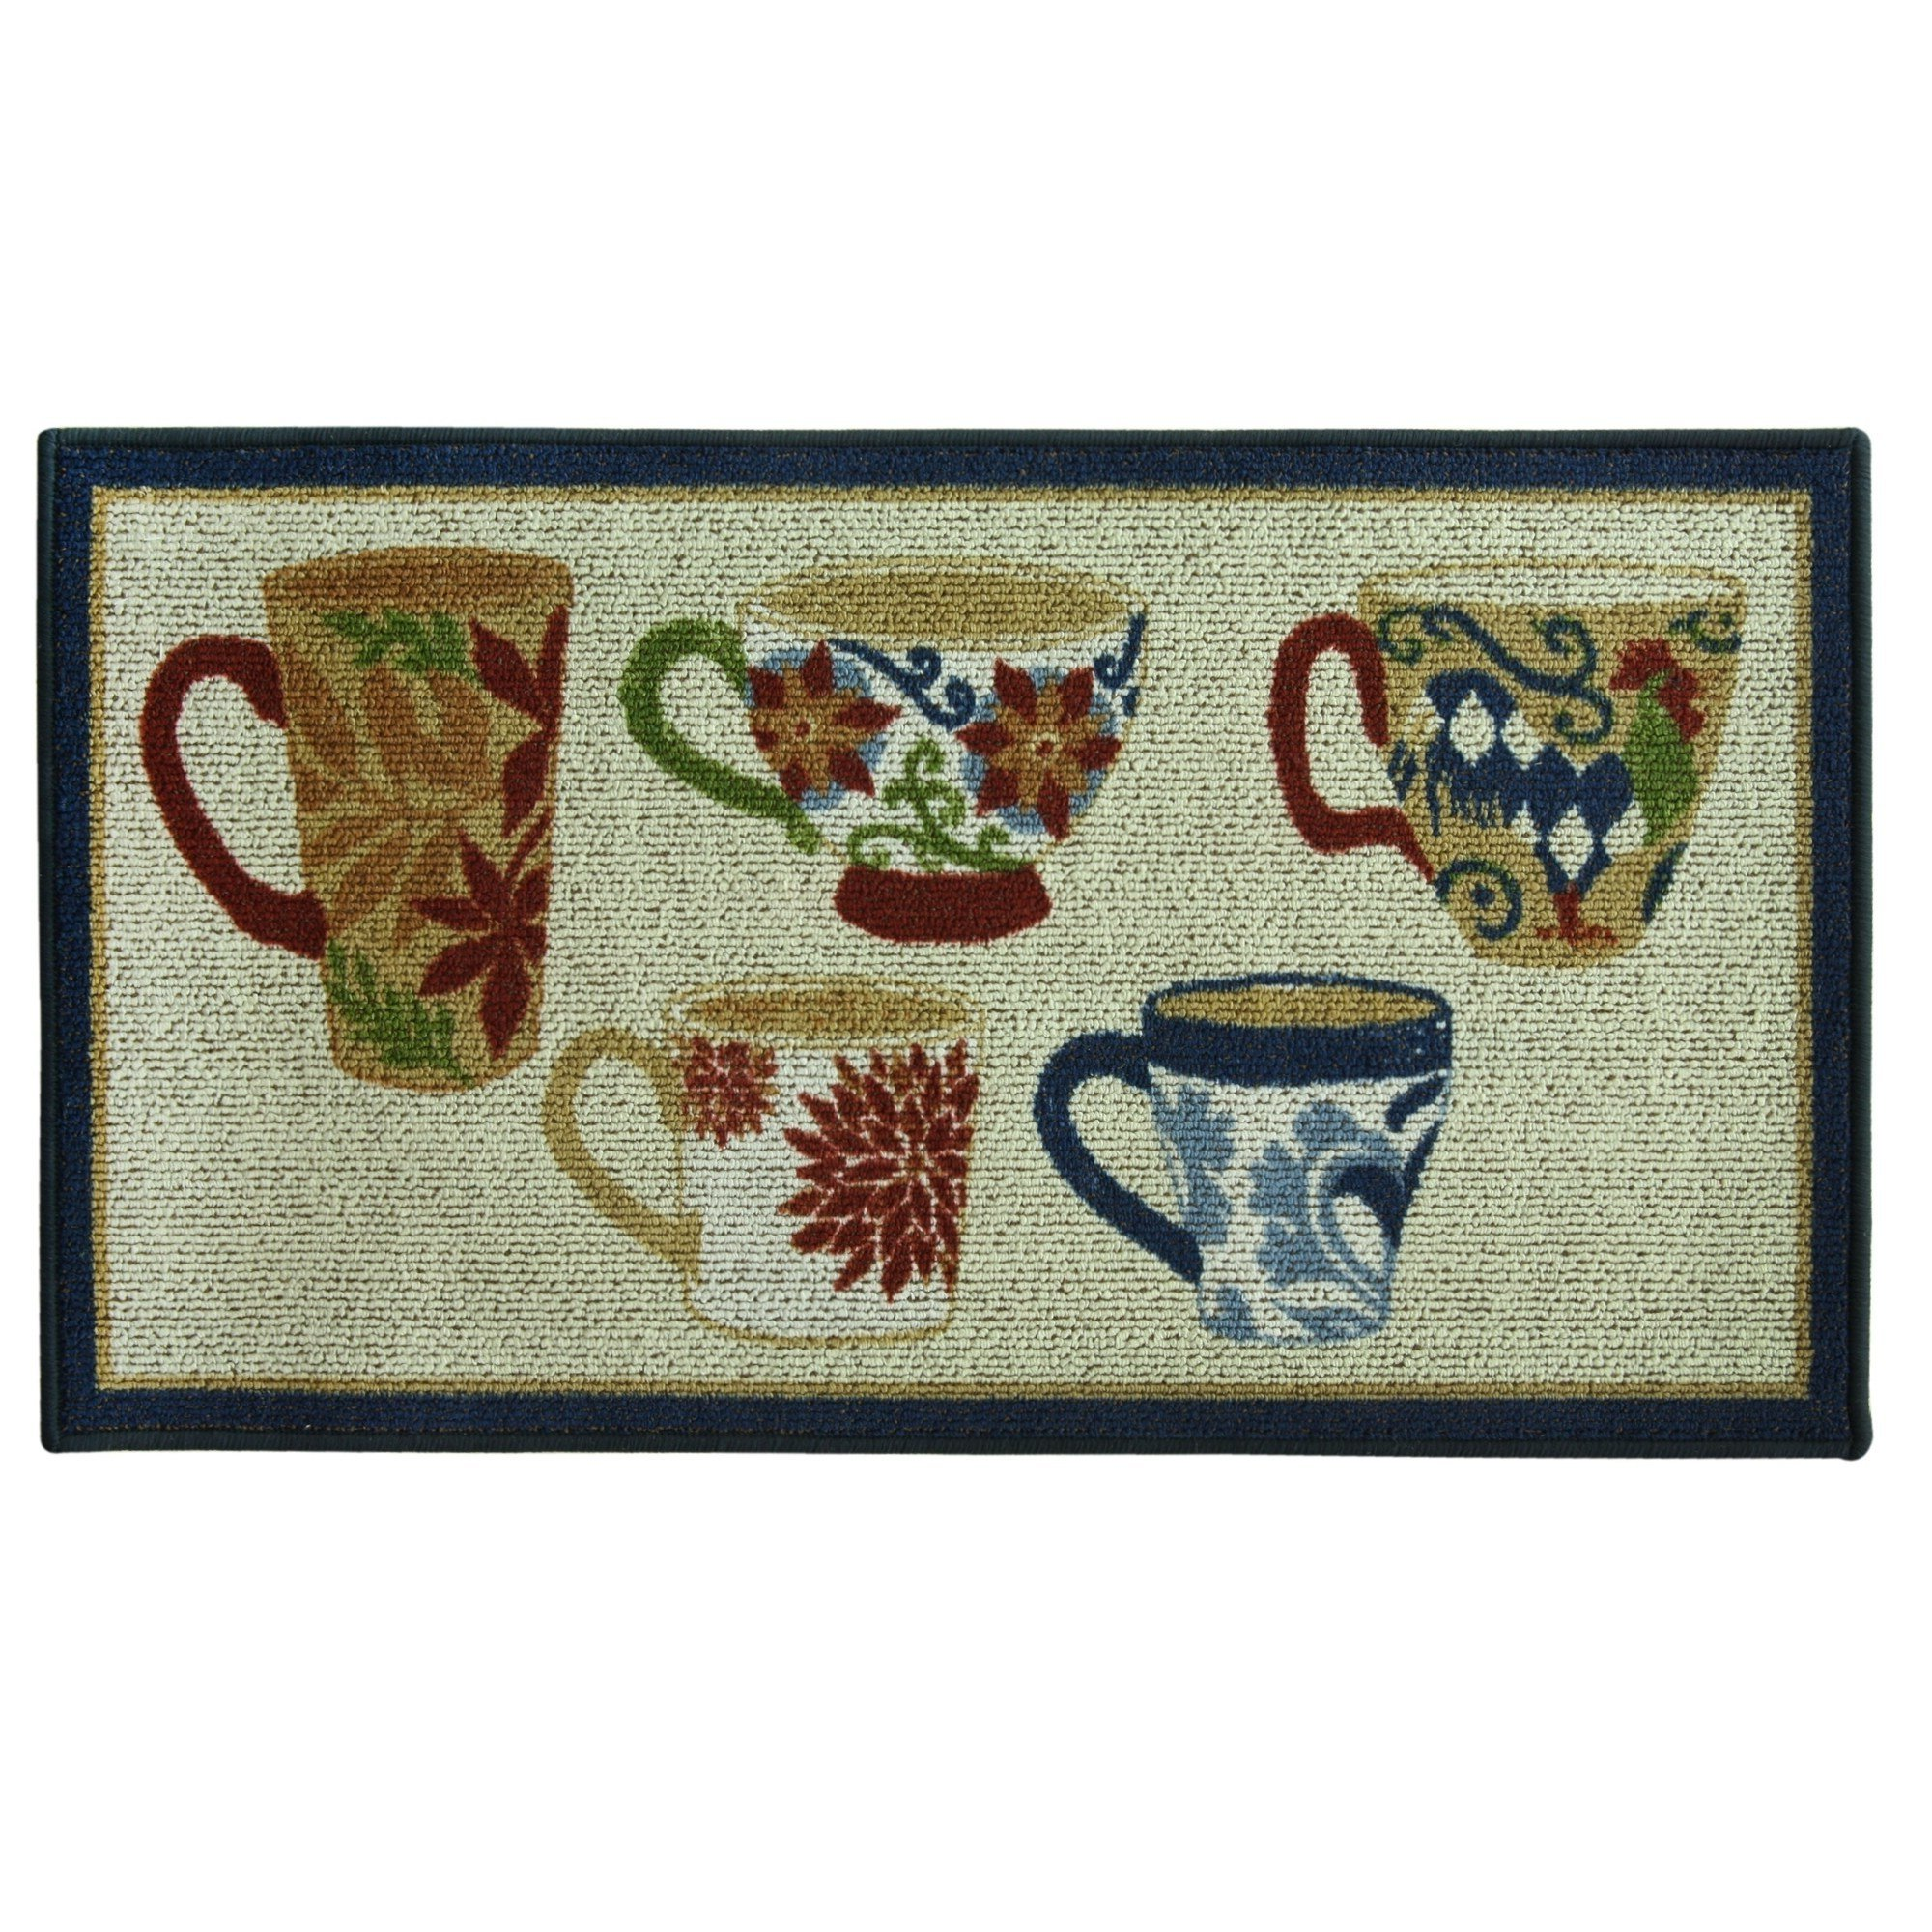 1 Piece 1'10 x 3'4 Blue Red Green Yellow Orange Floral Coffee Mugs Area Rug Rectangle, Indoor Novelty Country Coffee Cups Rooster Carpet Mat, Graphic Pattern Floral Leaves Kitchen Cottage, Nylon